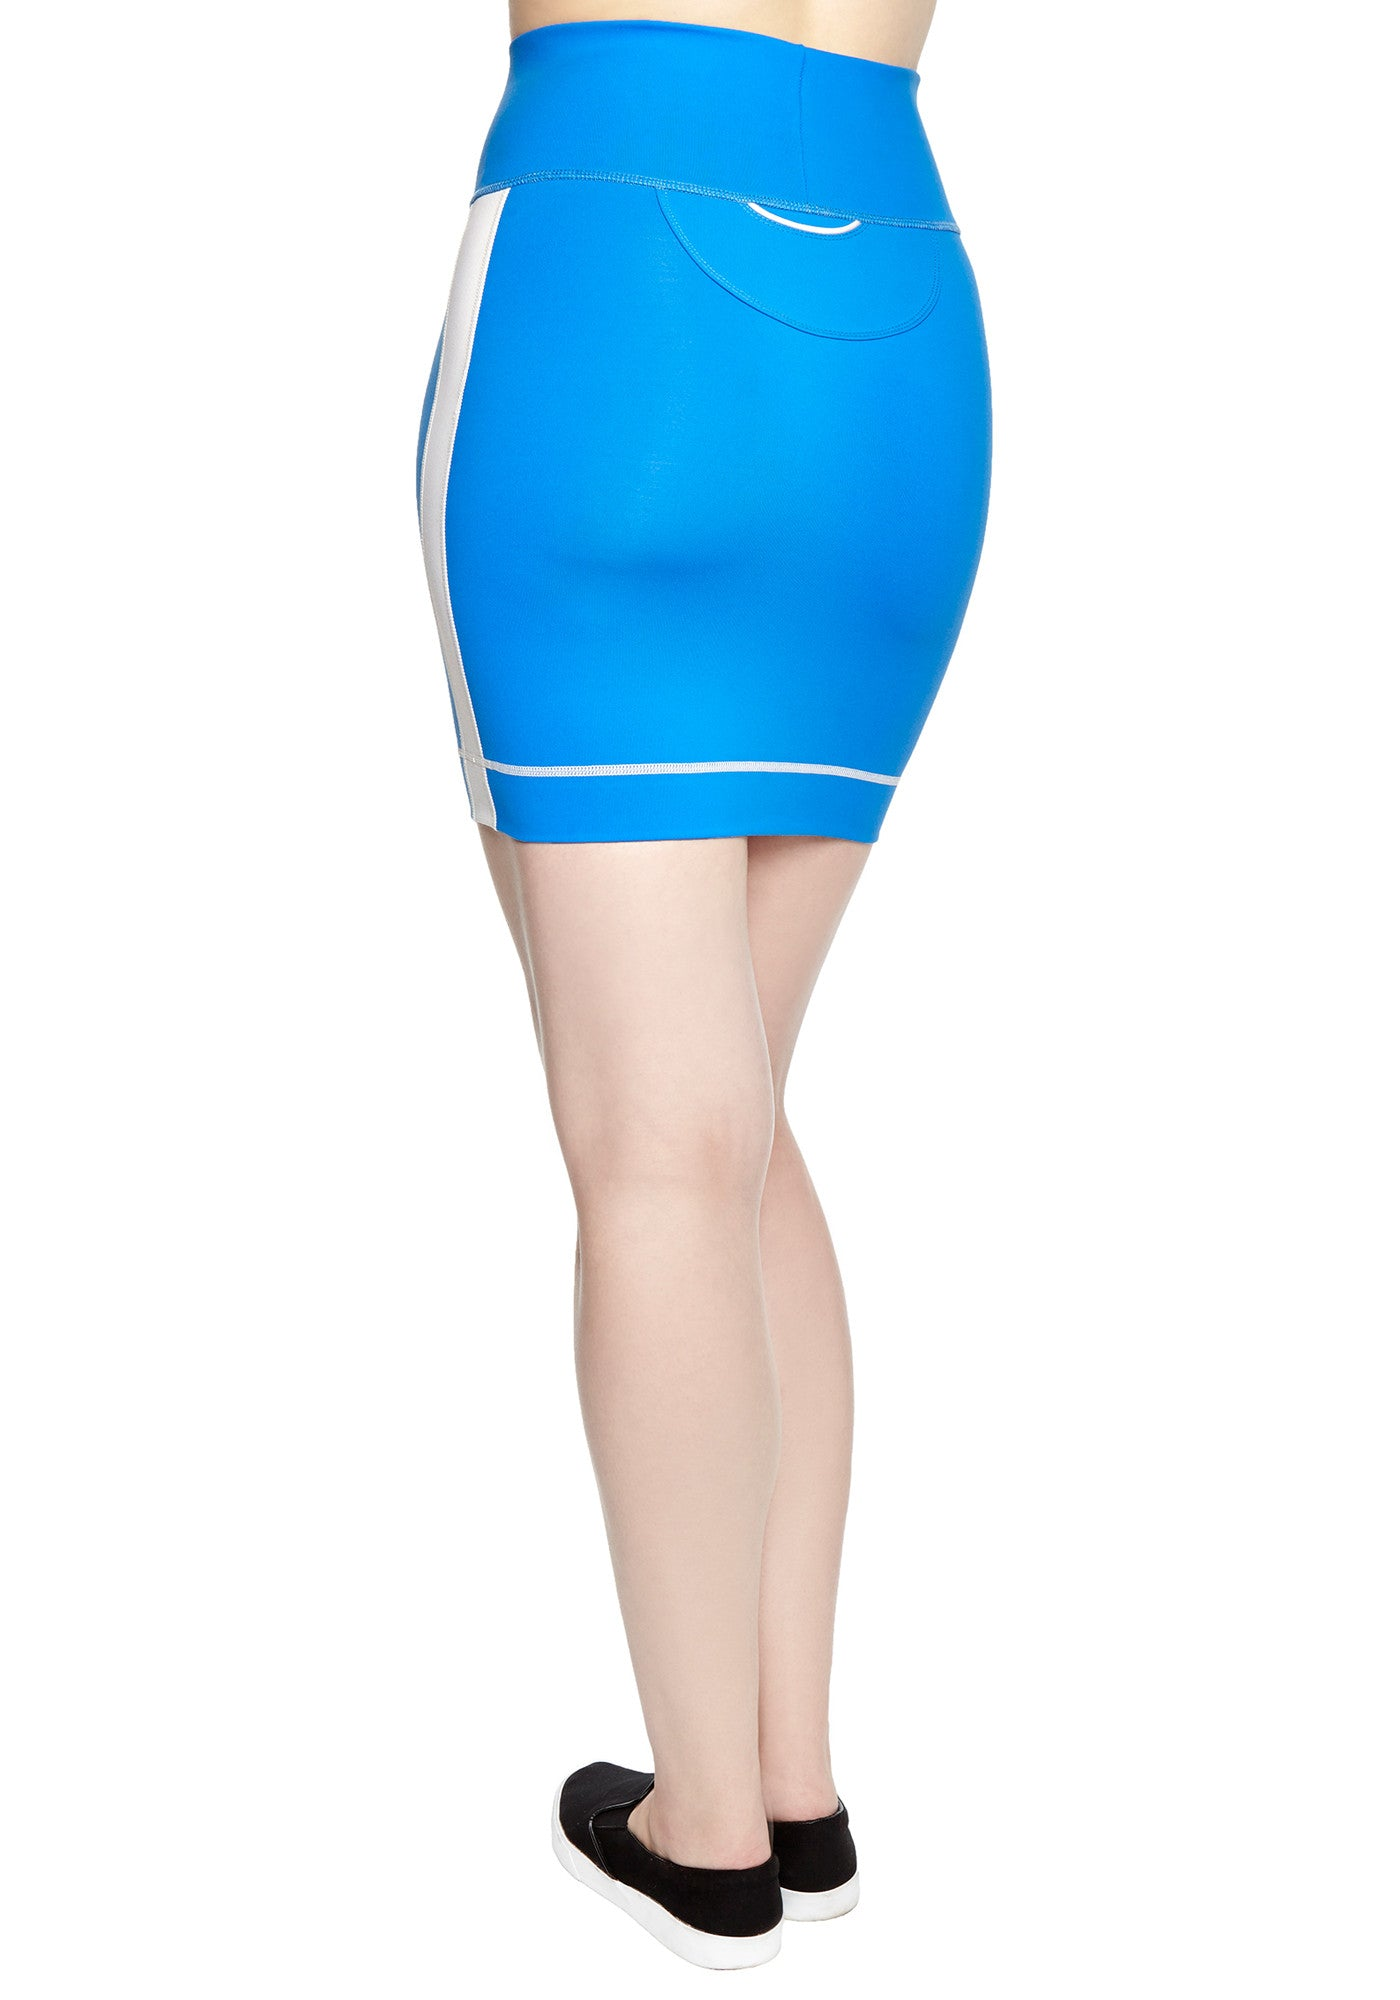 Back view of comfortable Mini Skirt in thick stretch fabric. Bright blue with contrast white panel and hem stitch. Back pocket at waist.